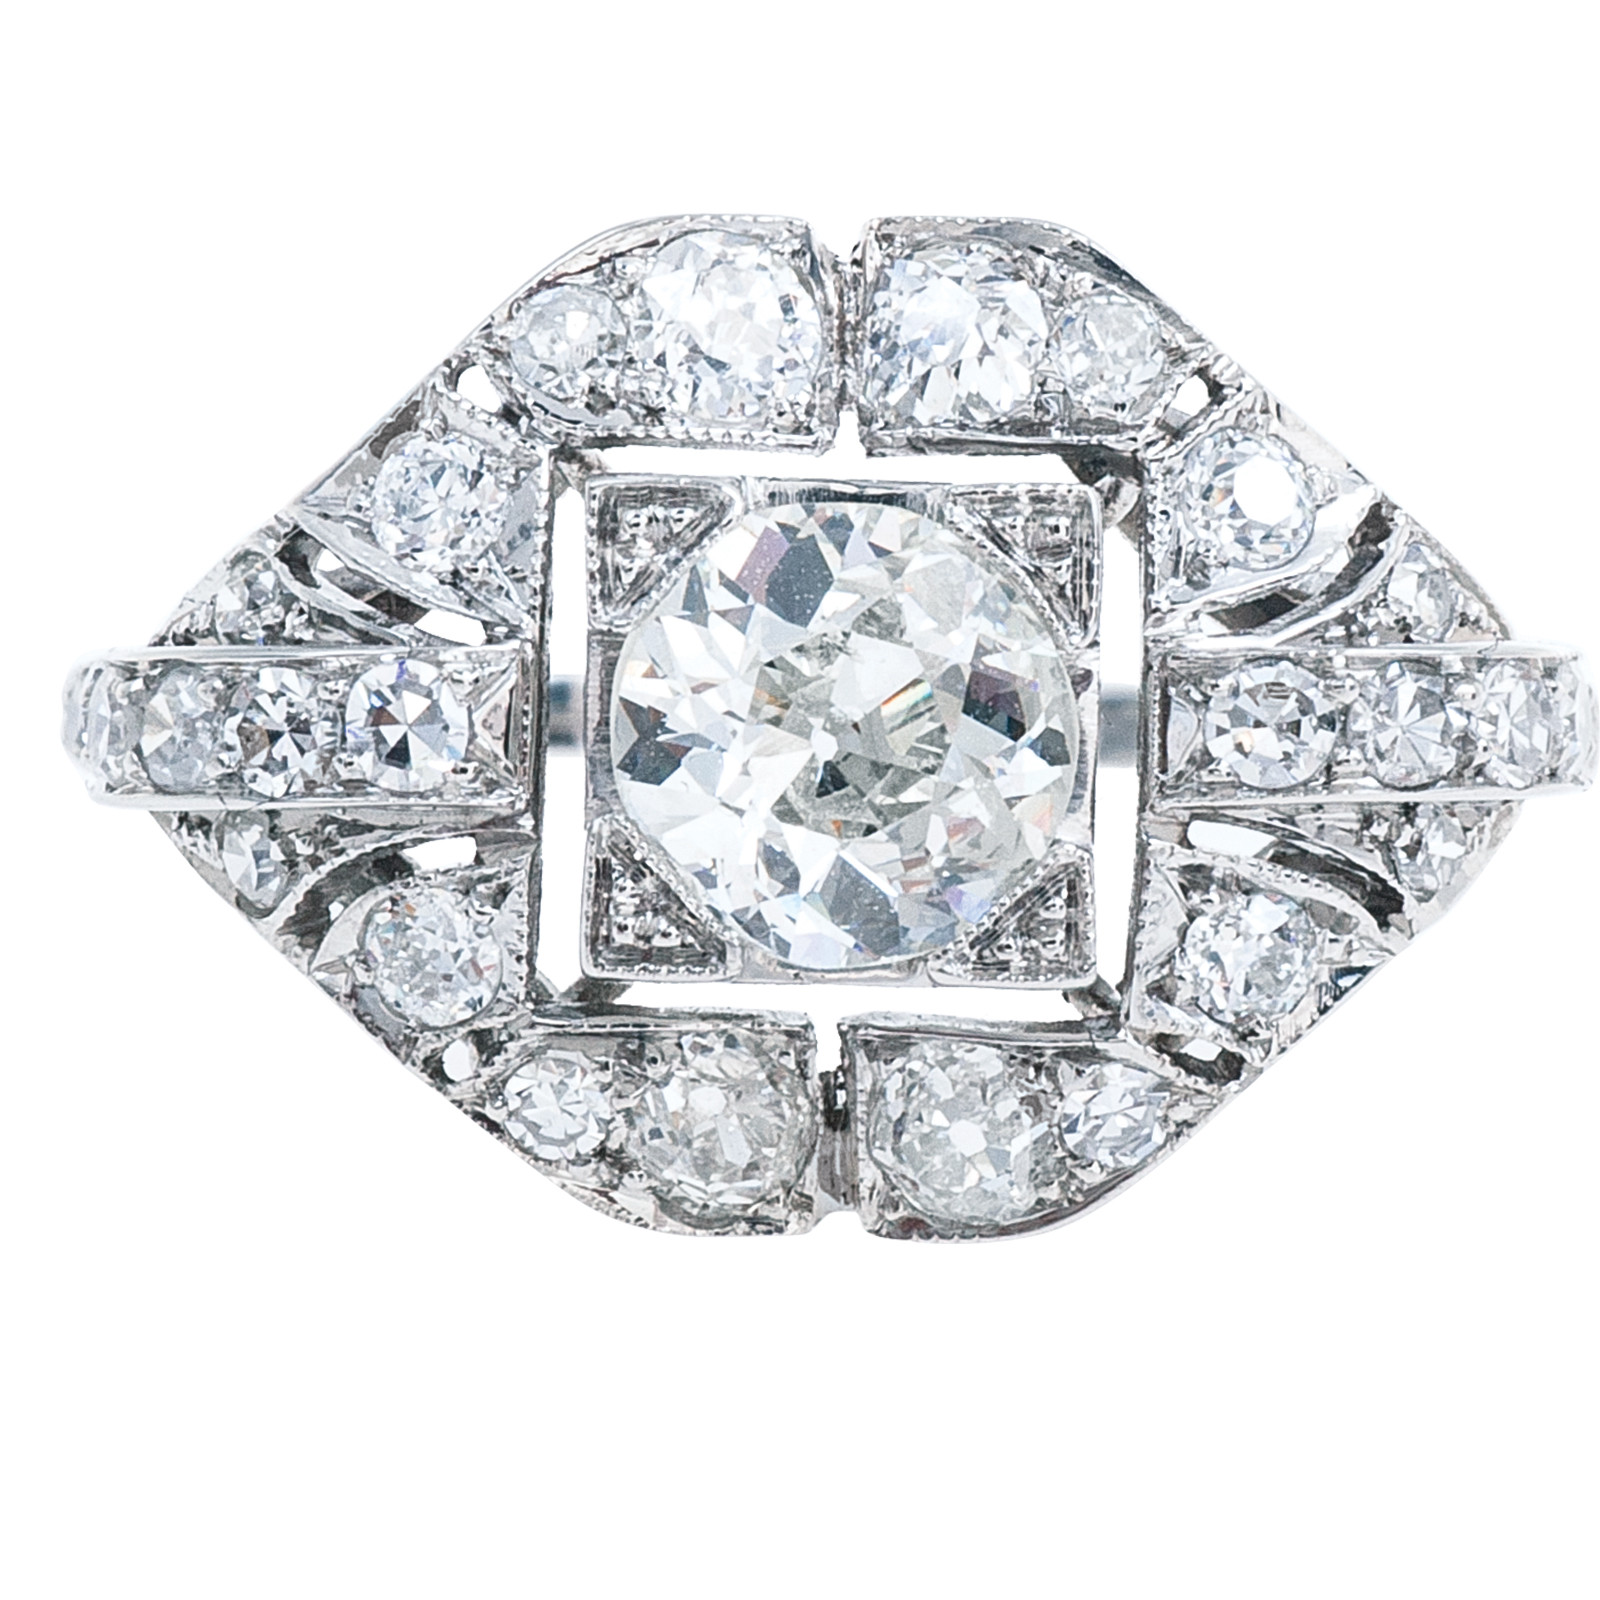 New Art Deco-Inspired 1.30 CTW Diamond Engagement Ring